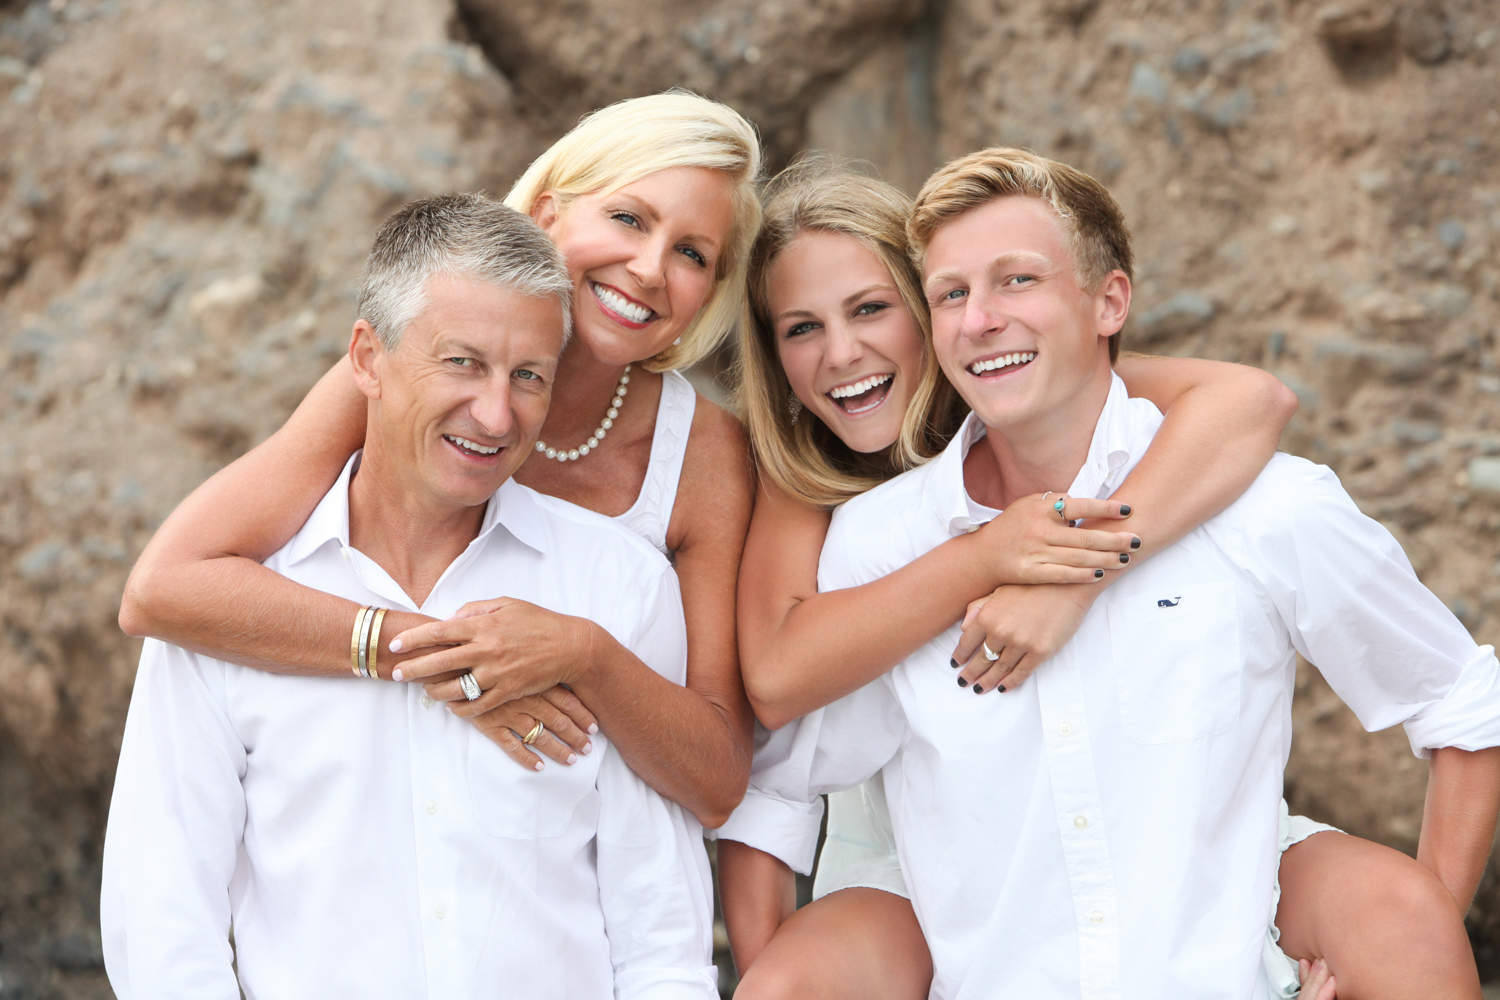 val-westover-photography-family-orange-county